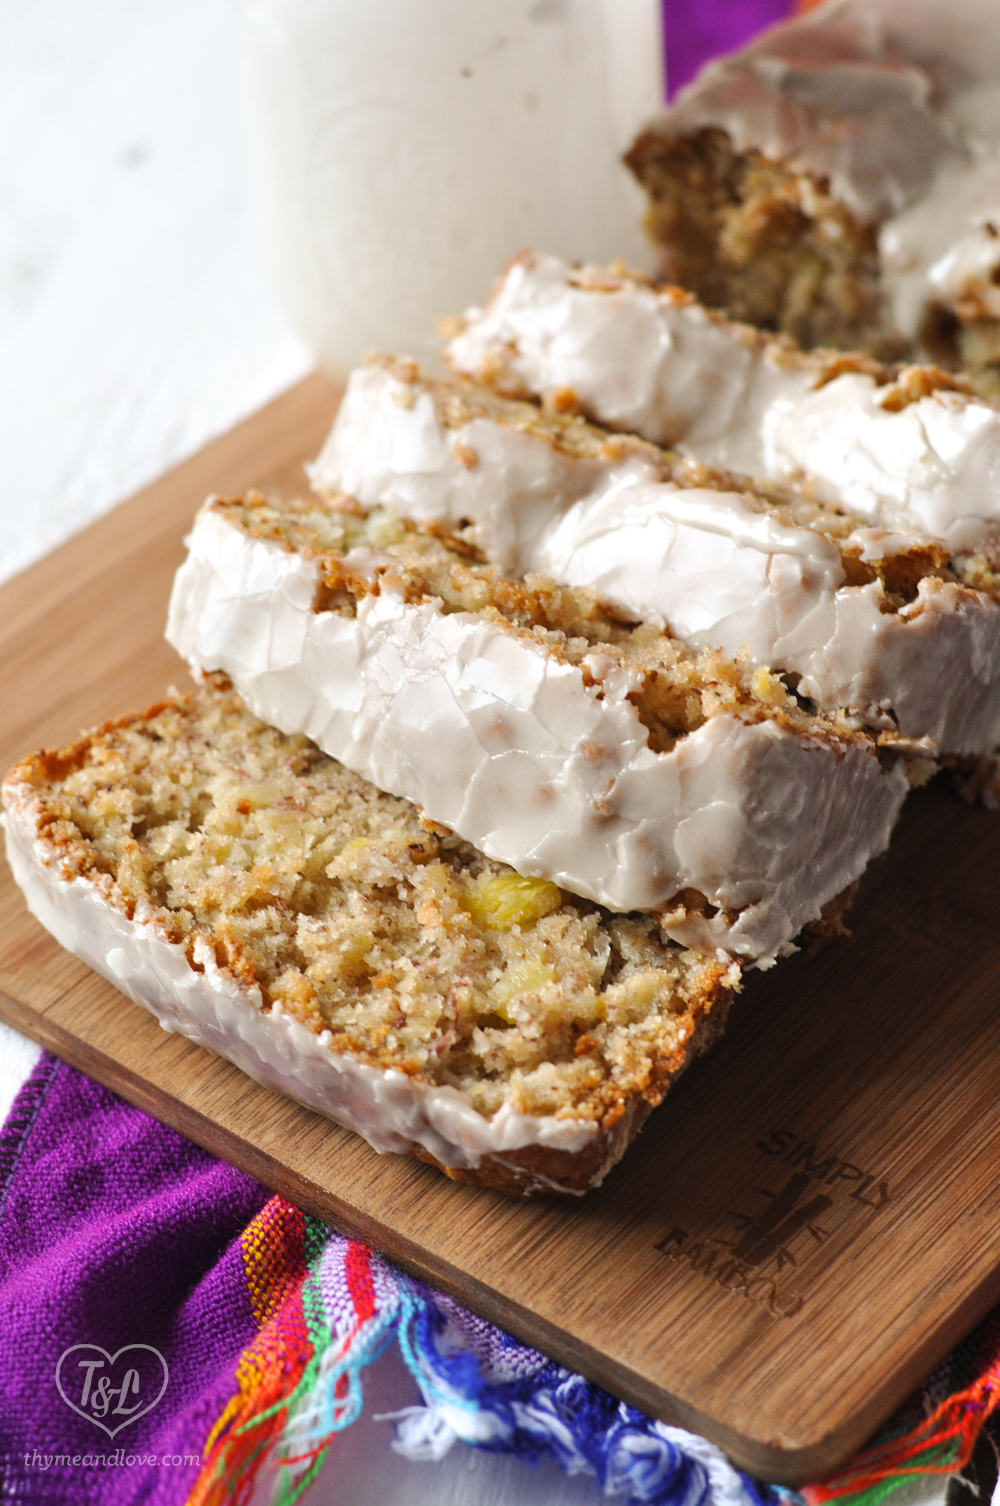 Vegan Pineapple Banana Bread is moist, tender and delicious. The bread is topped with a pineapple glaze that just takes this quick bread to the next level! #vegan #dessert #bread